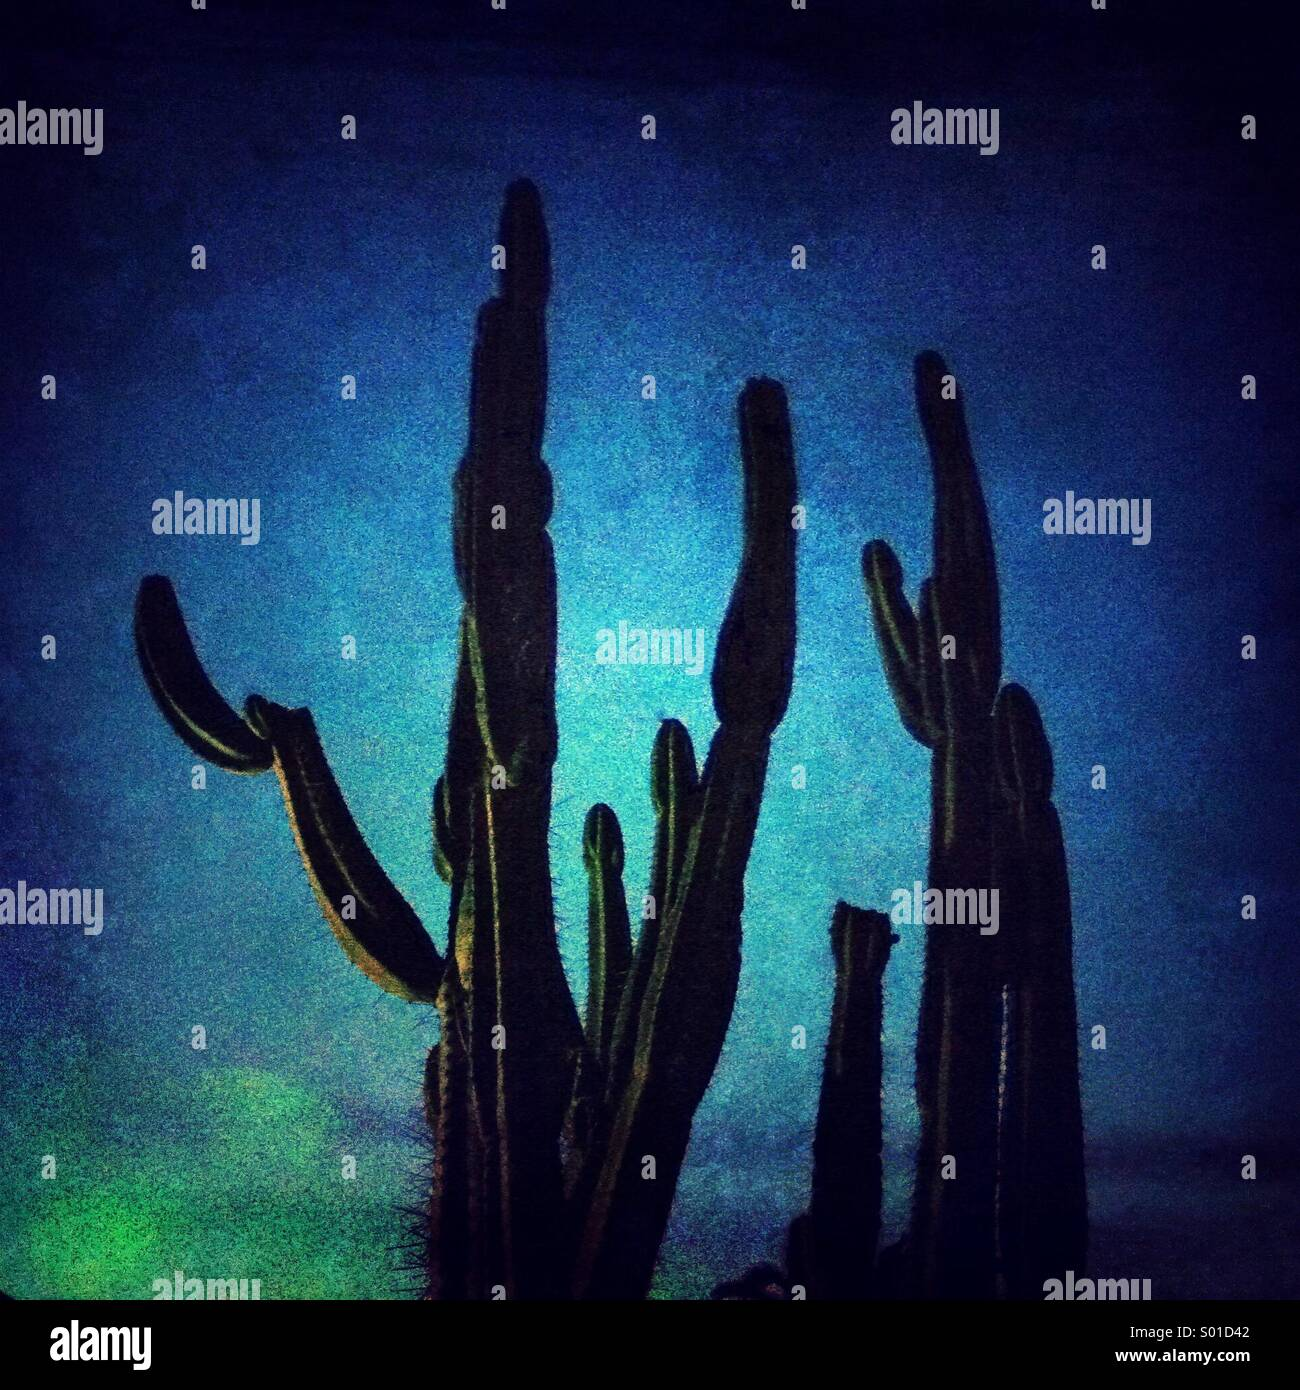 Cactus on a blue sky backgroud - Stock Image